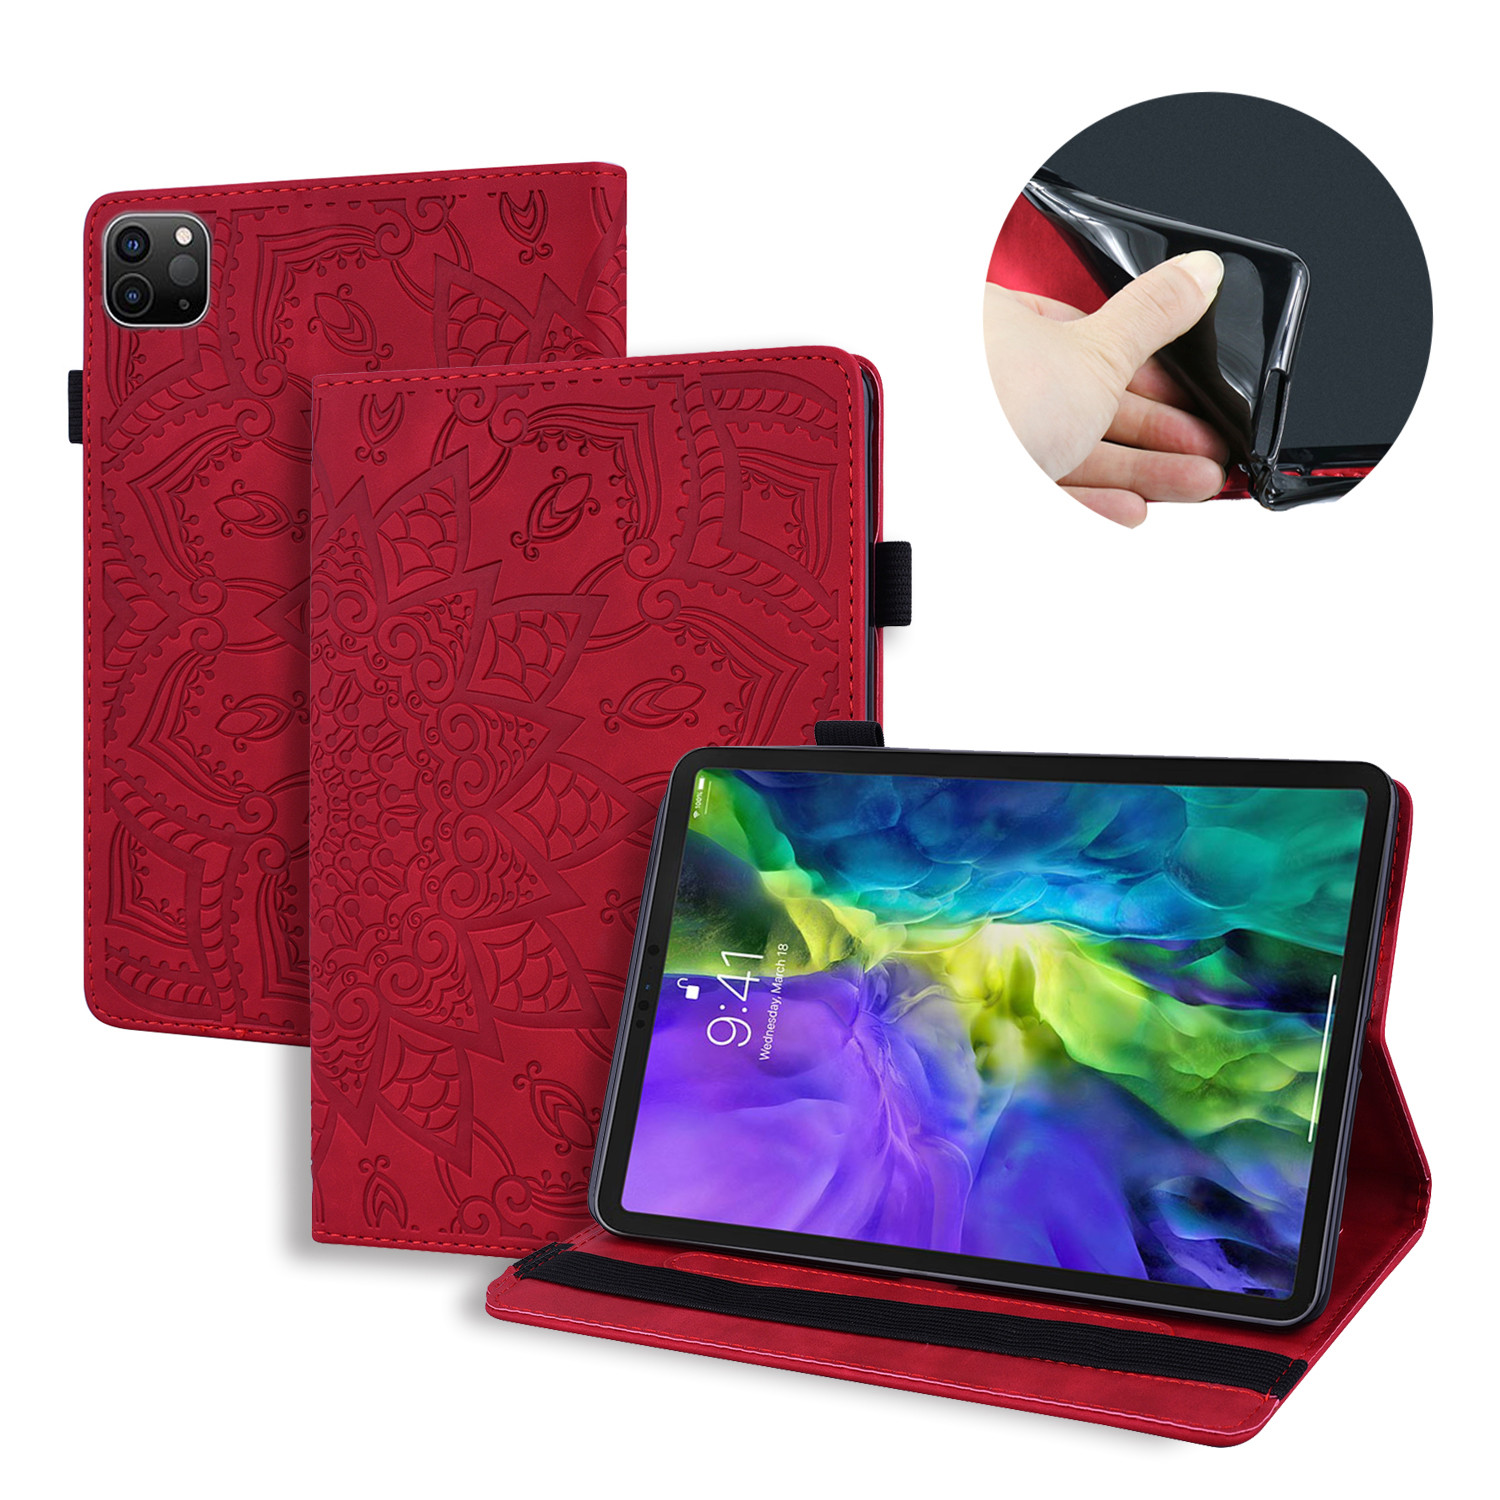 4 Green For iPad Pro 12 9 Case 4th Generation 2020 Release Smart Cover for iPad Pro 12